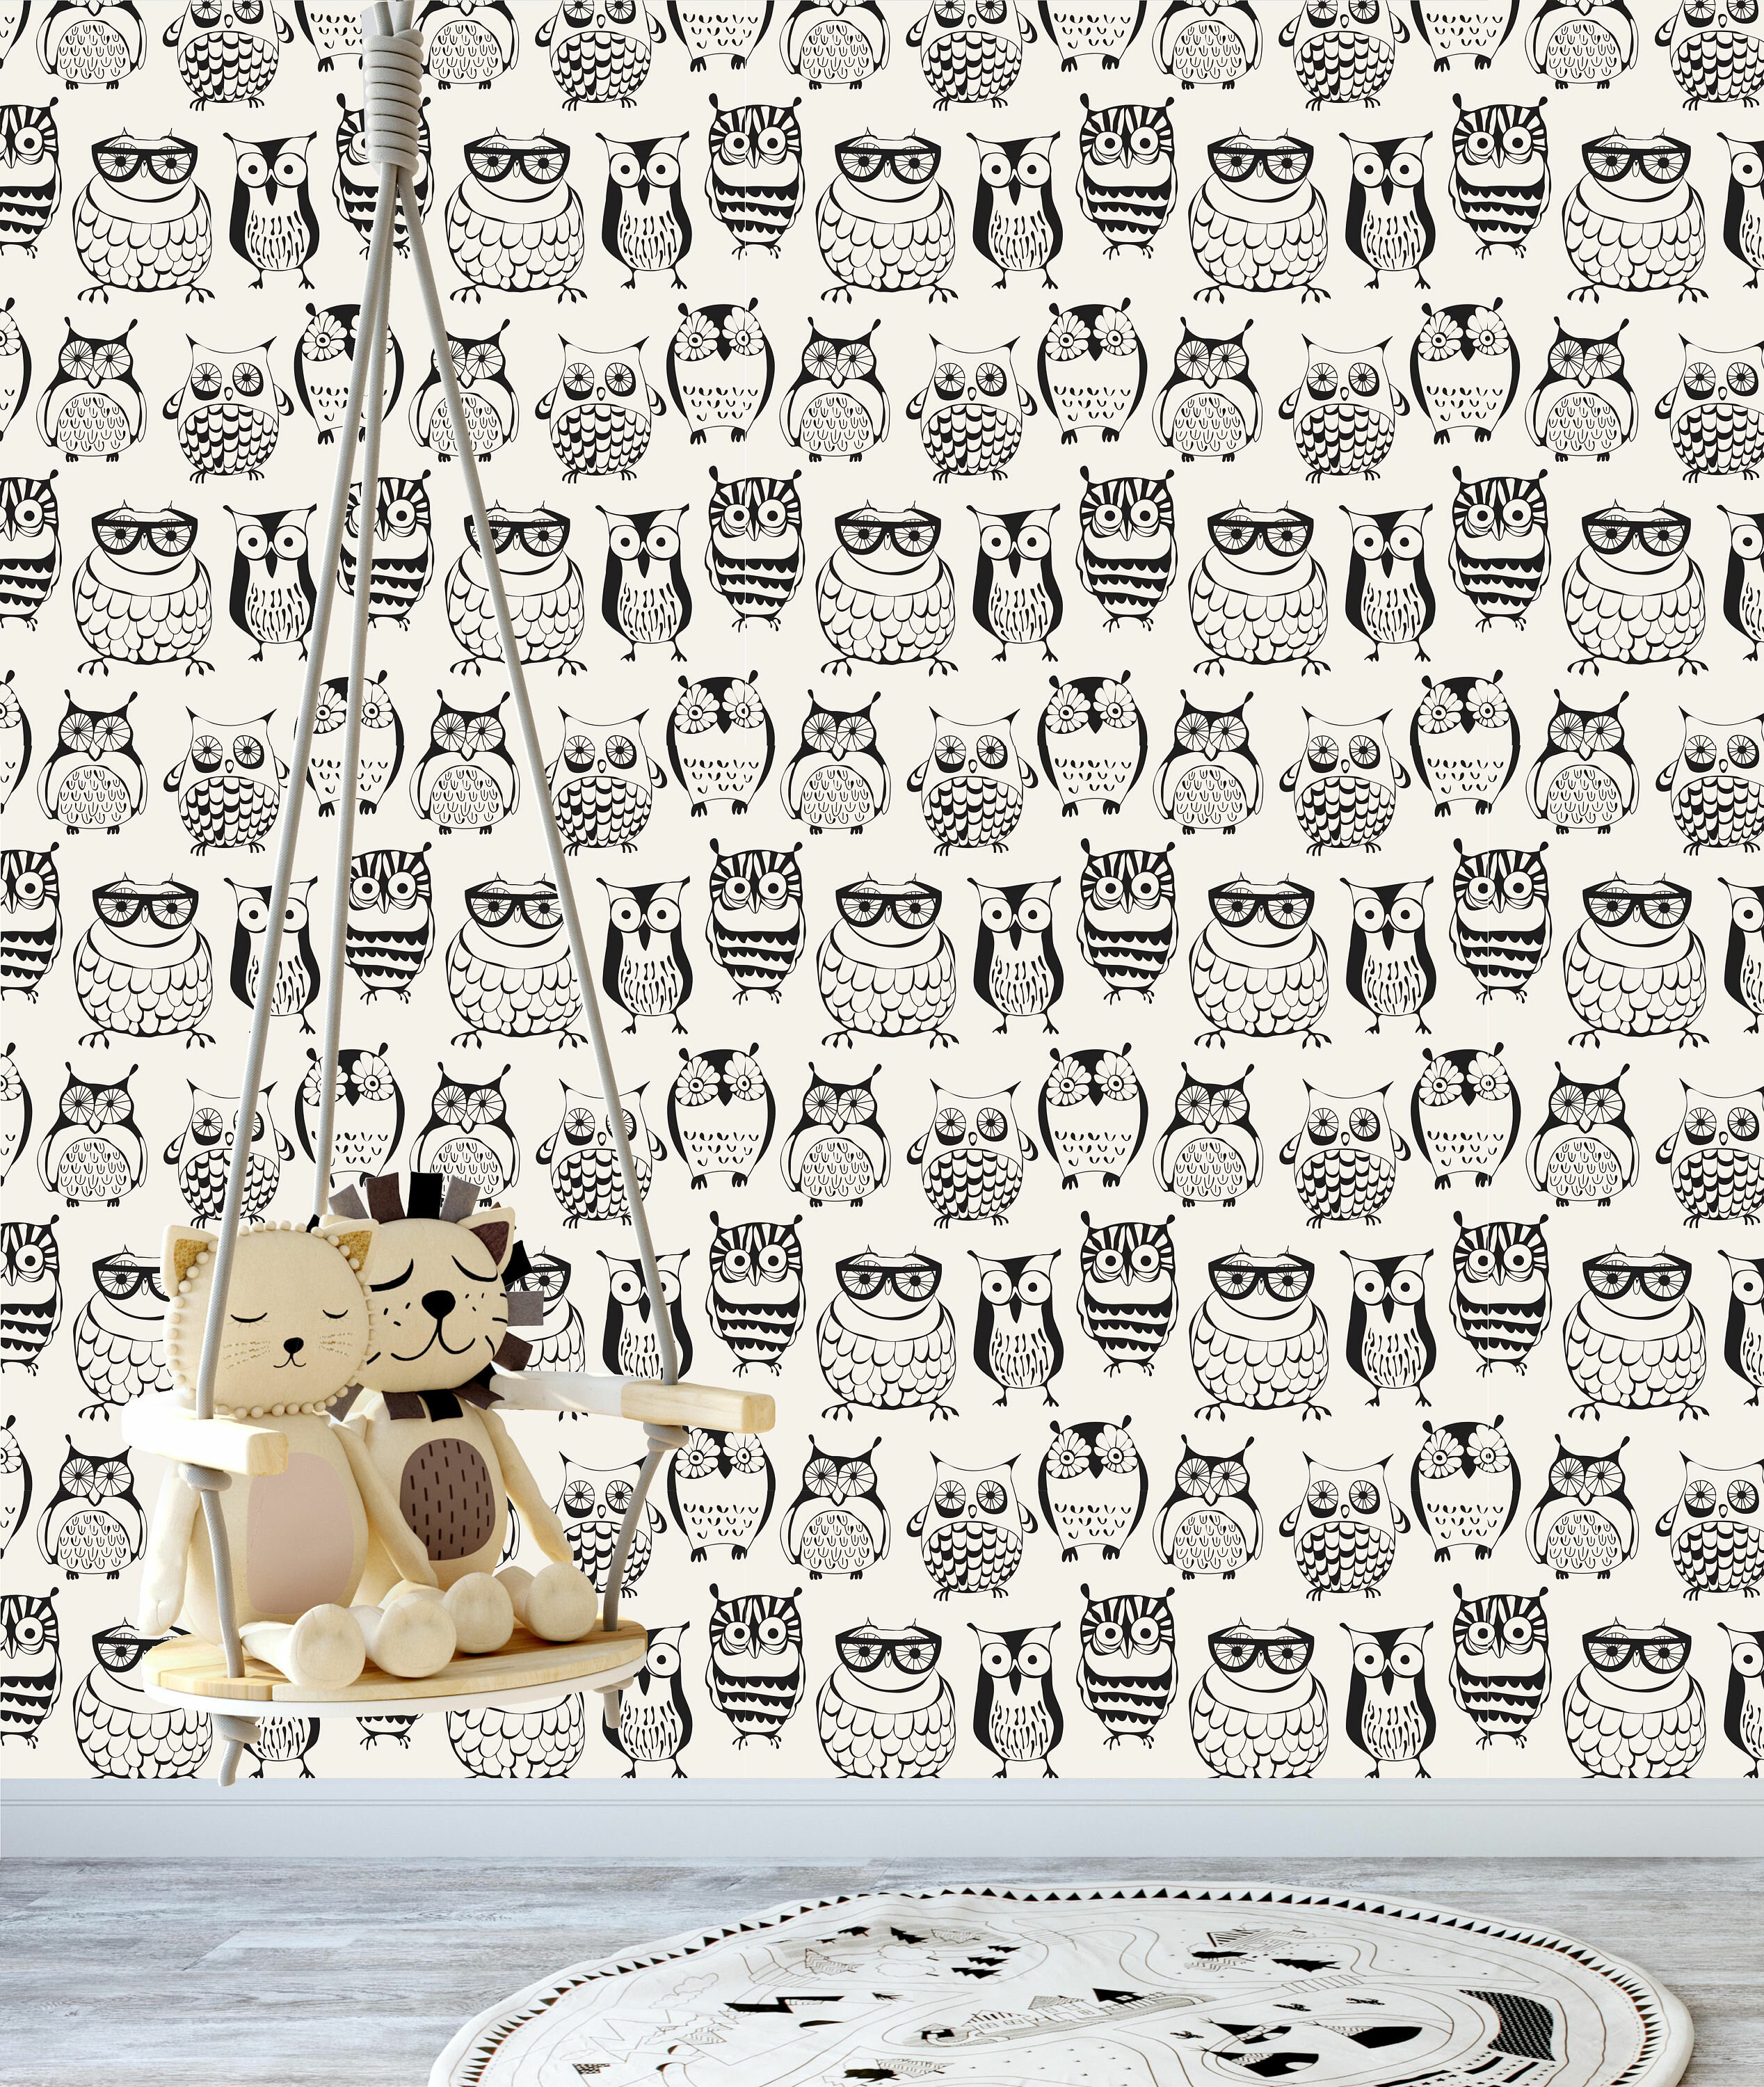 Hill Removable Nursery Cute Owls 6 25 L X W And Stick Wallpaper Roll